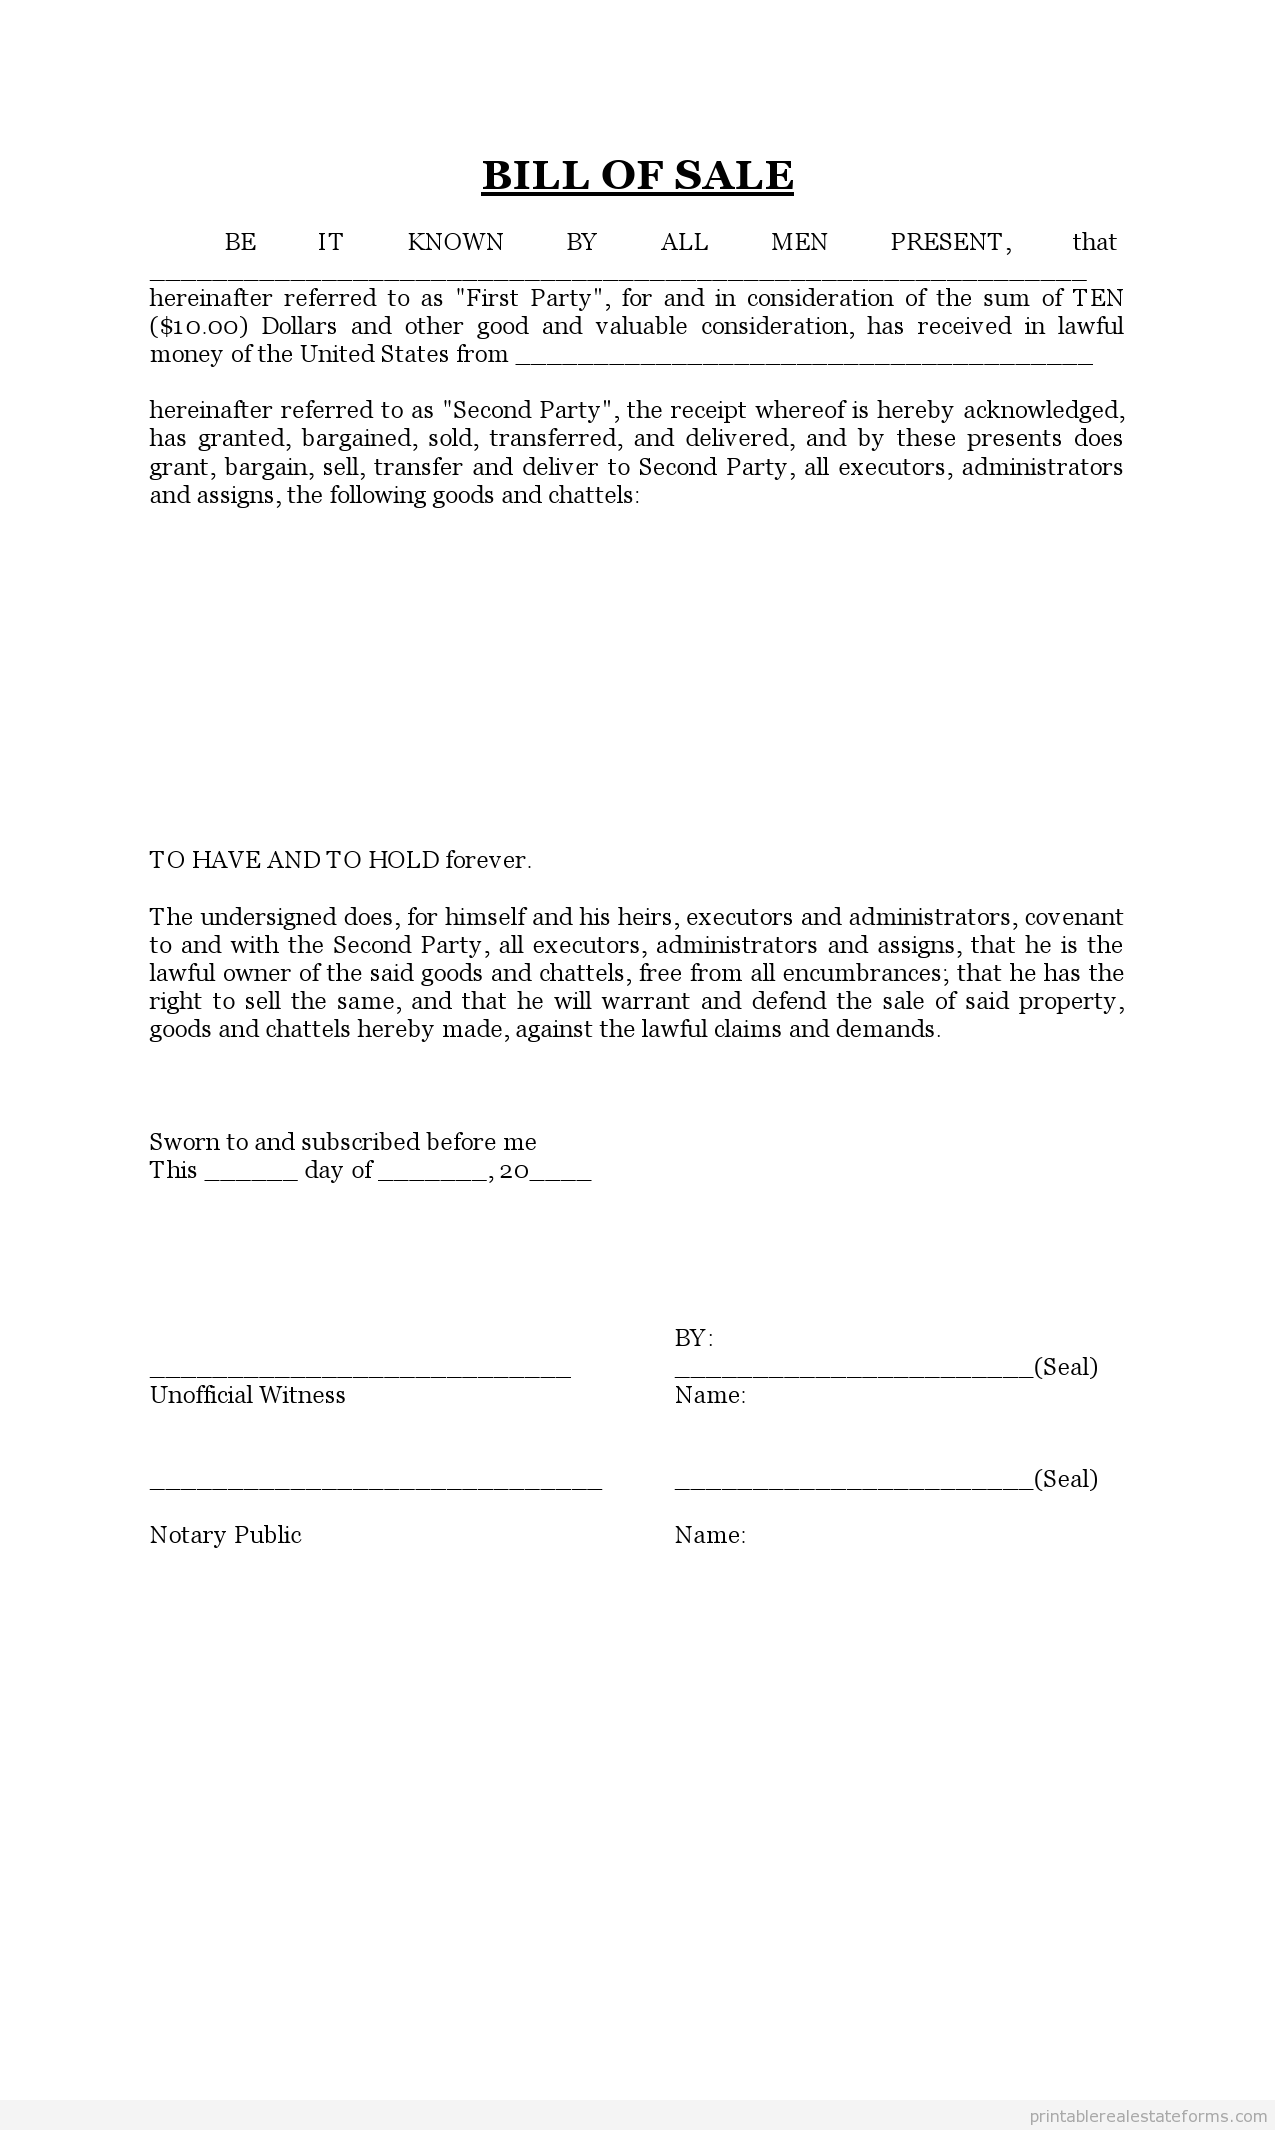 bill of sale word document